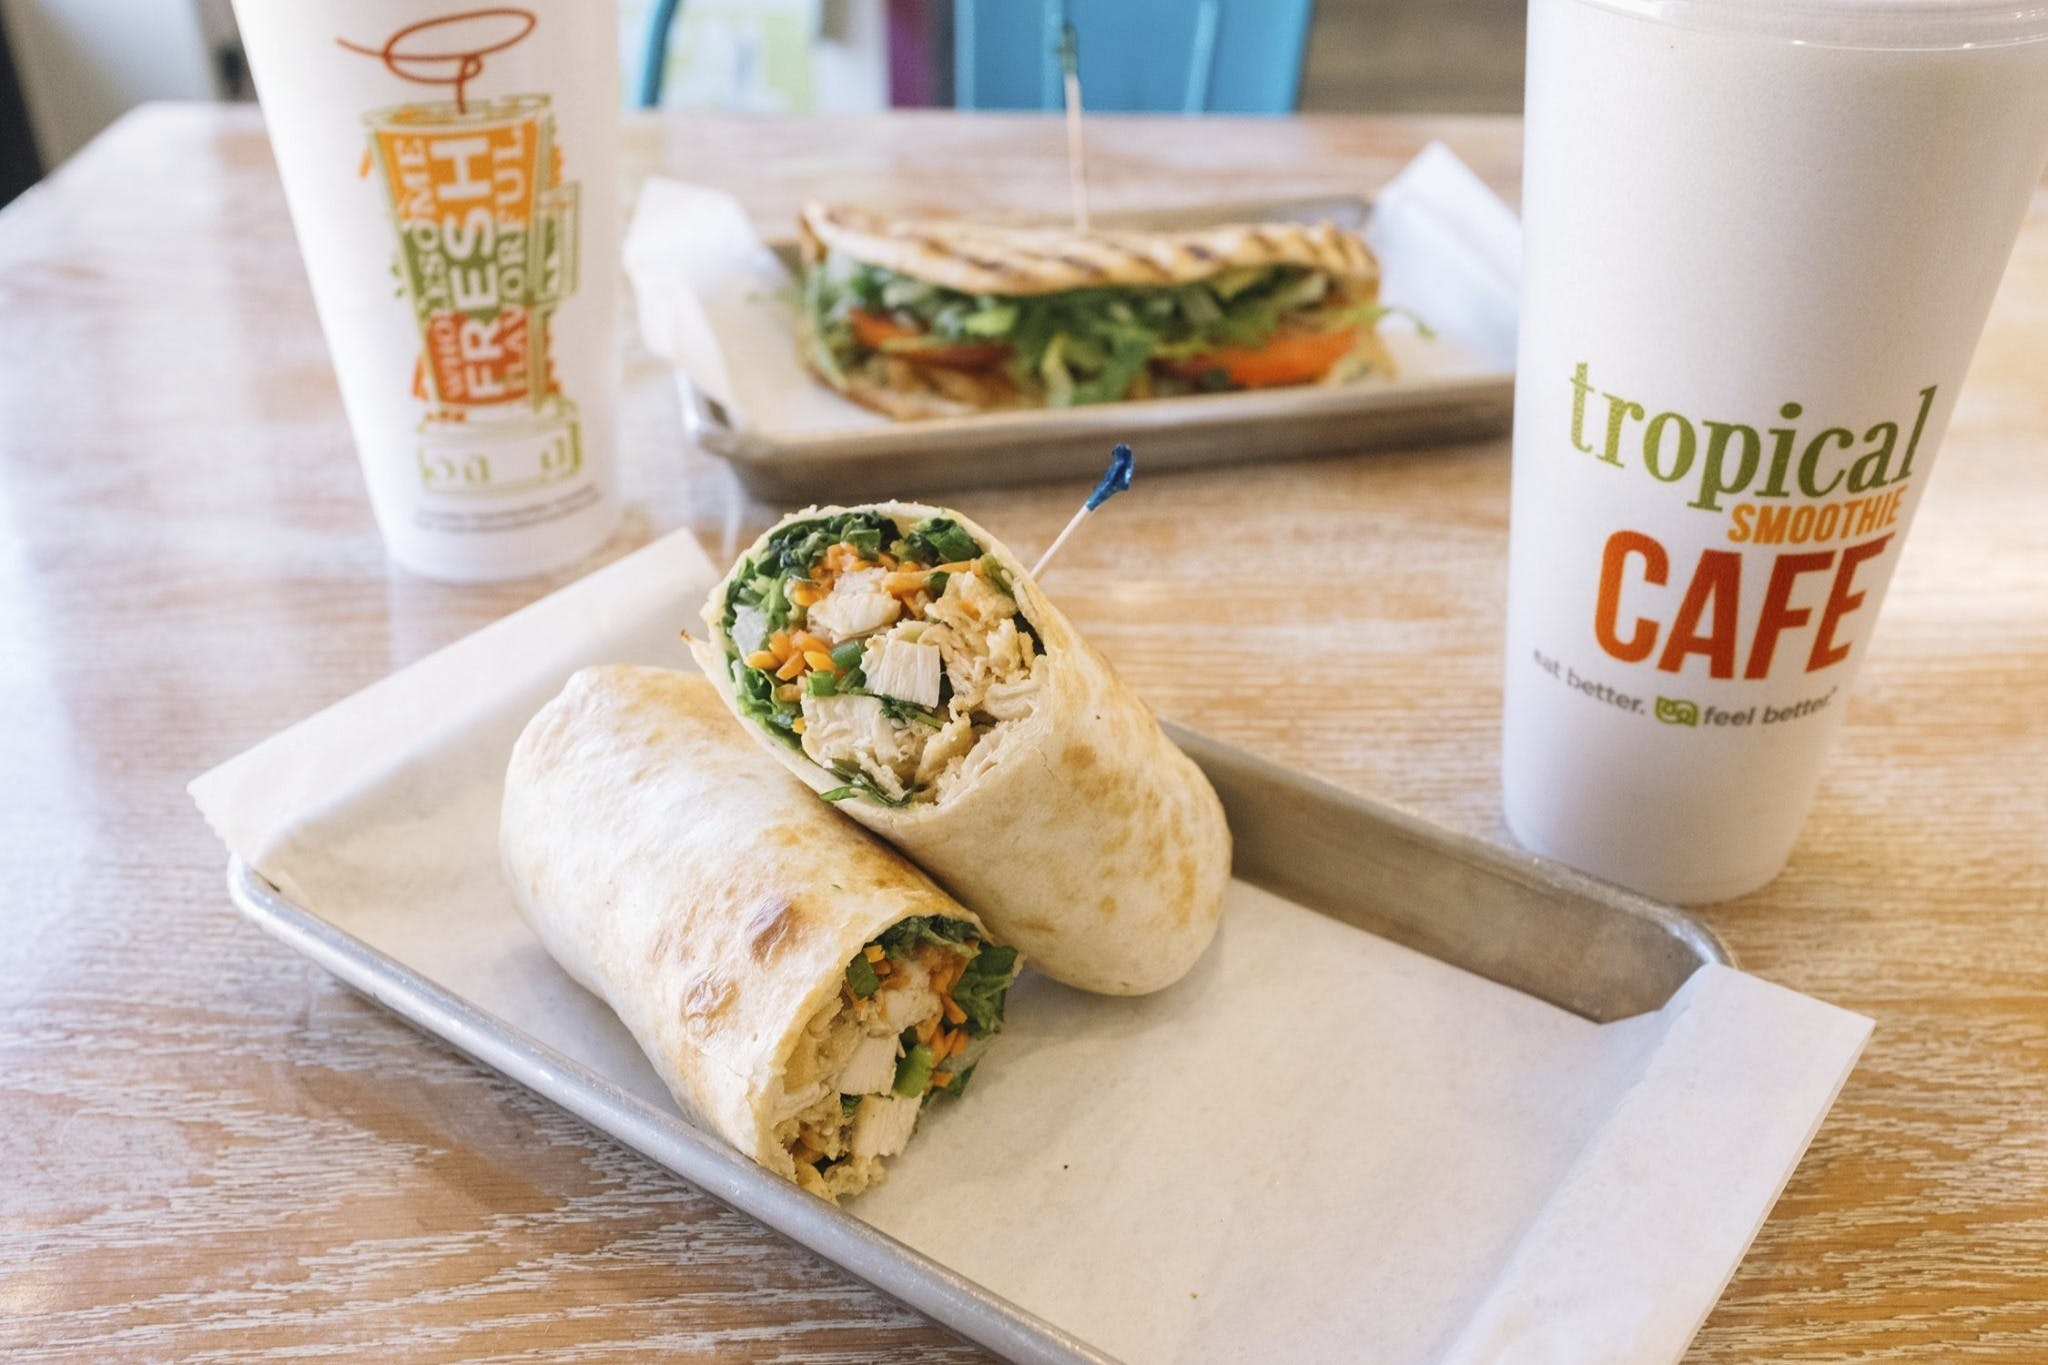 Tropical Smoothie Cafe in Appleton - Highlight